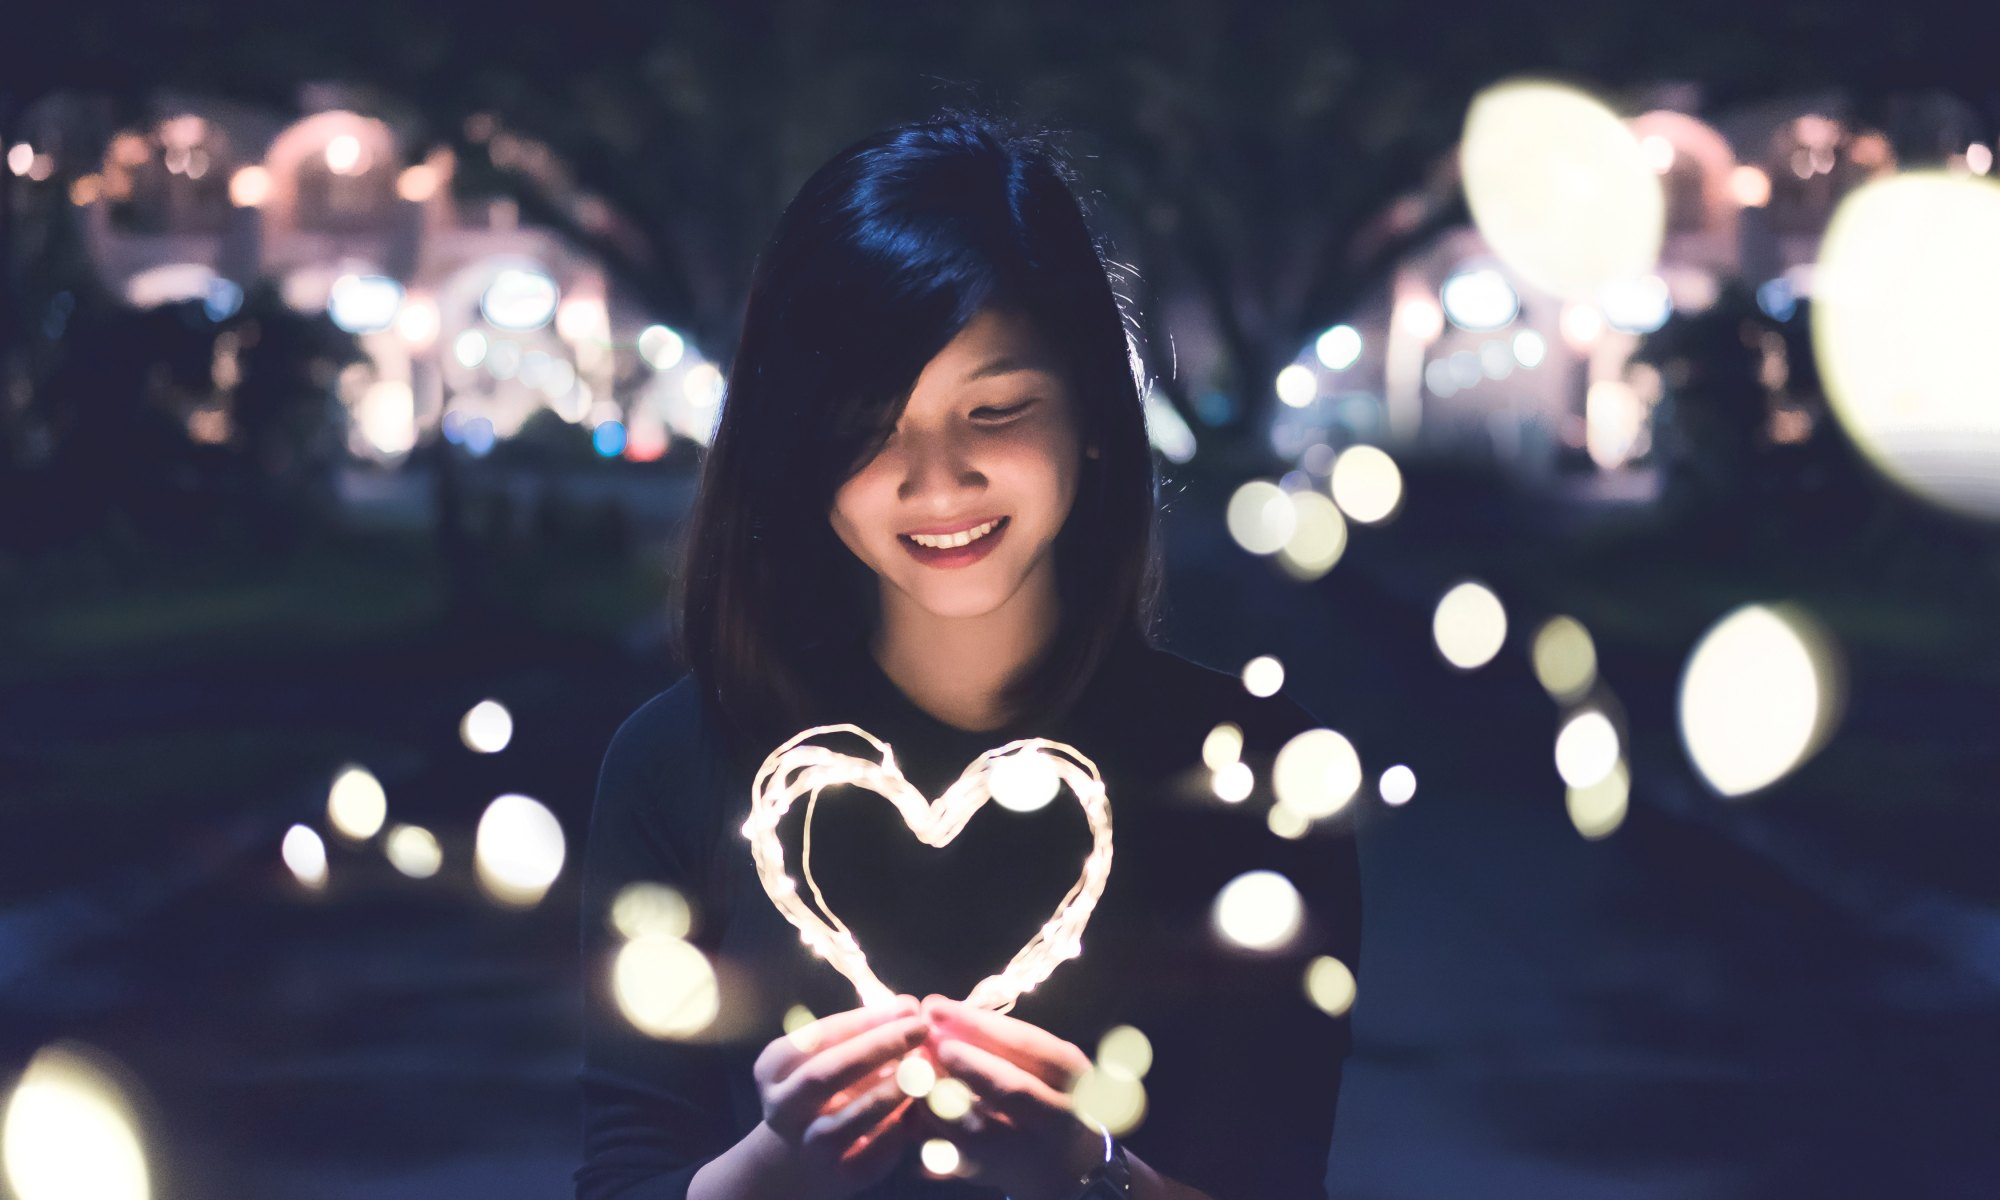 Happy woman with glowing heart